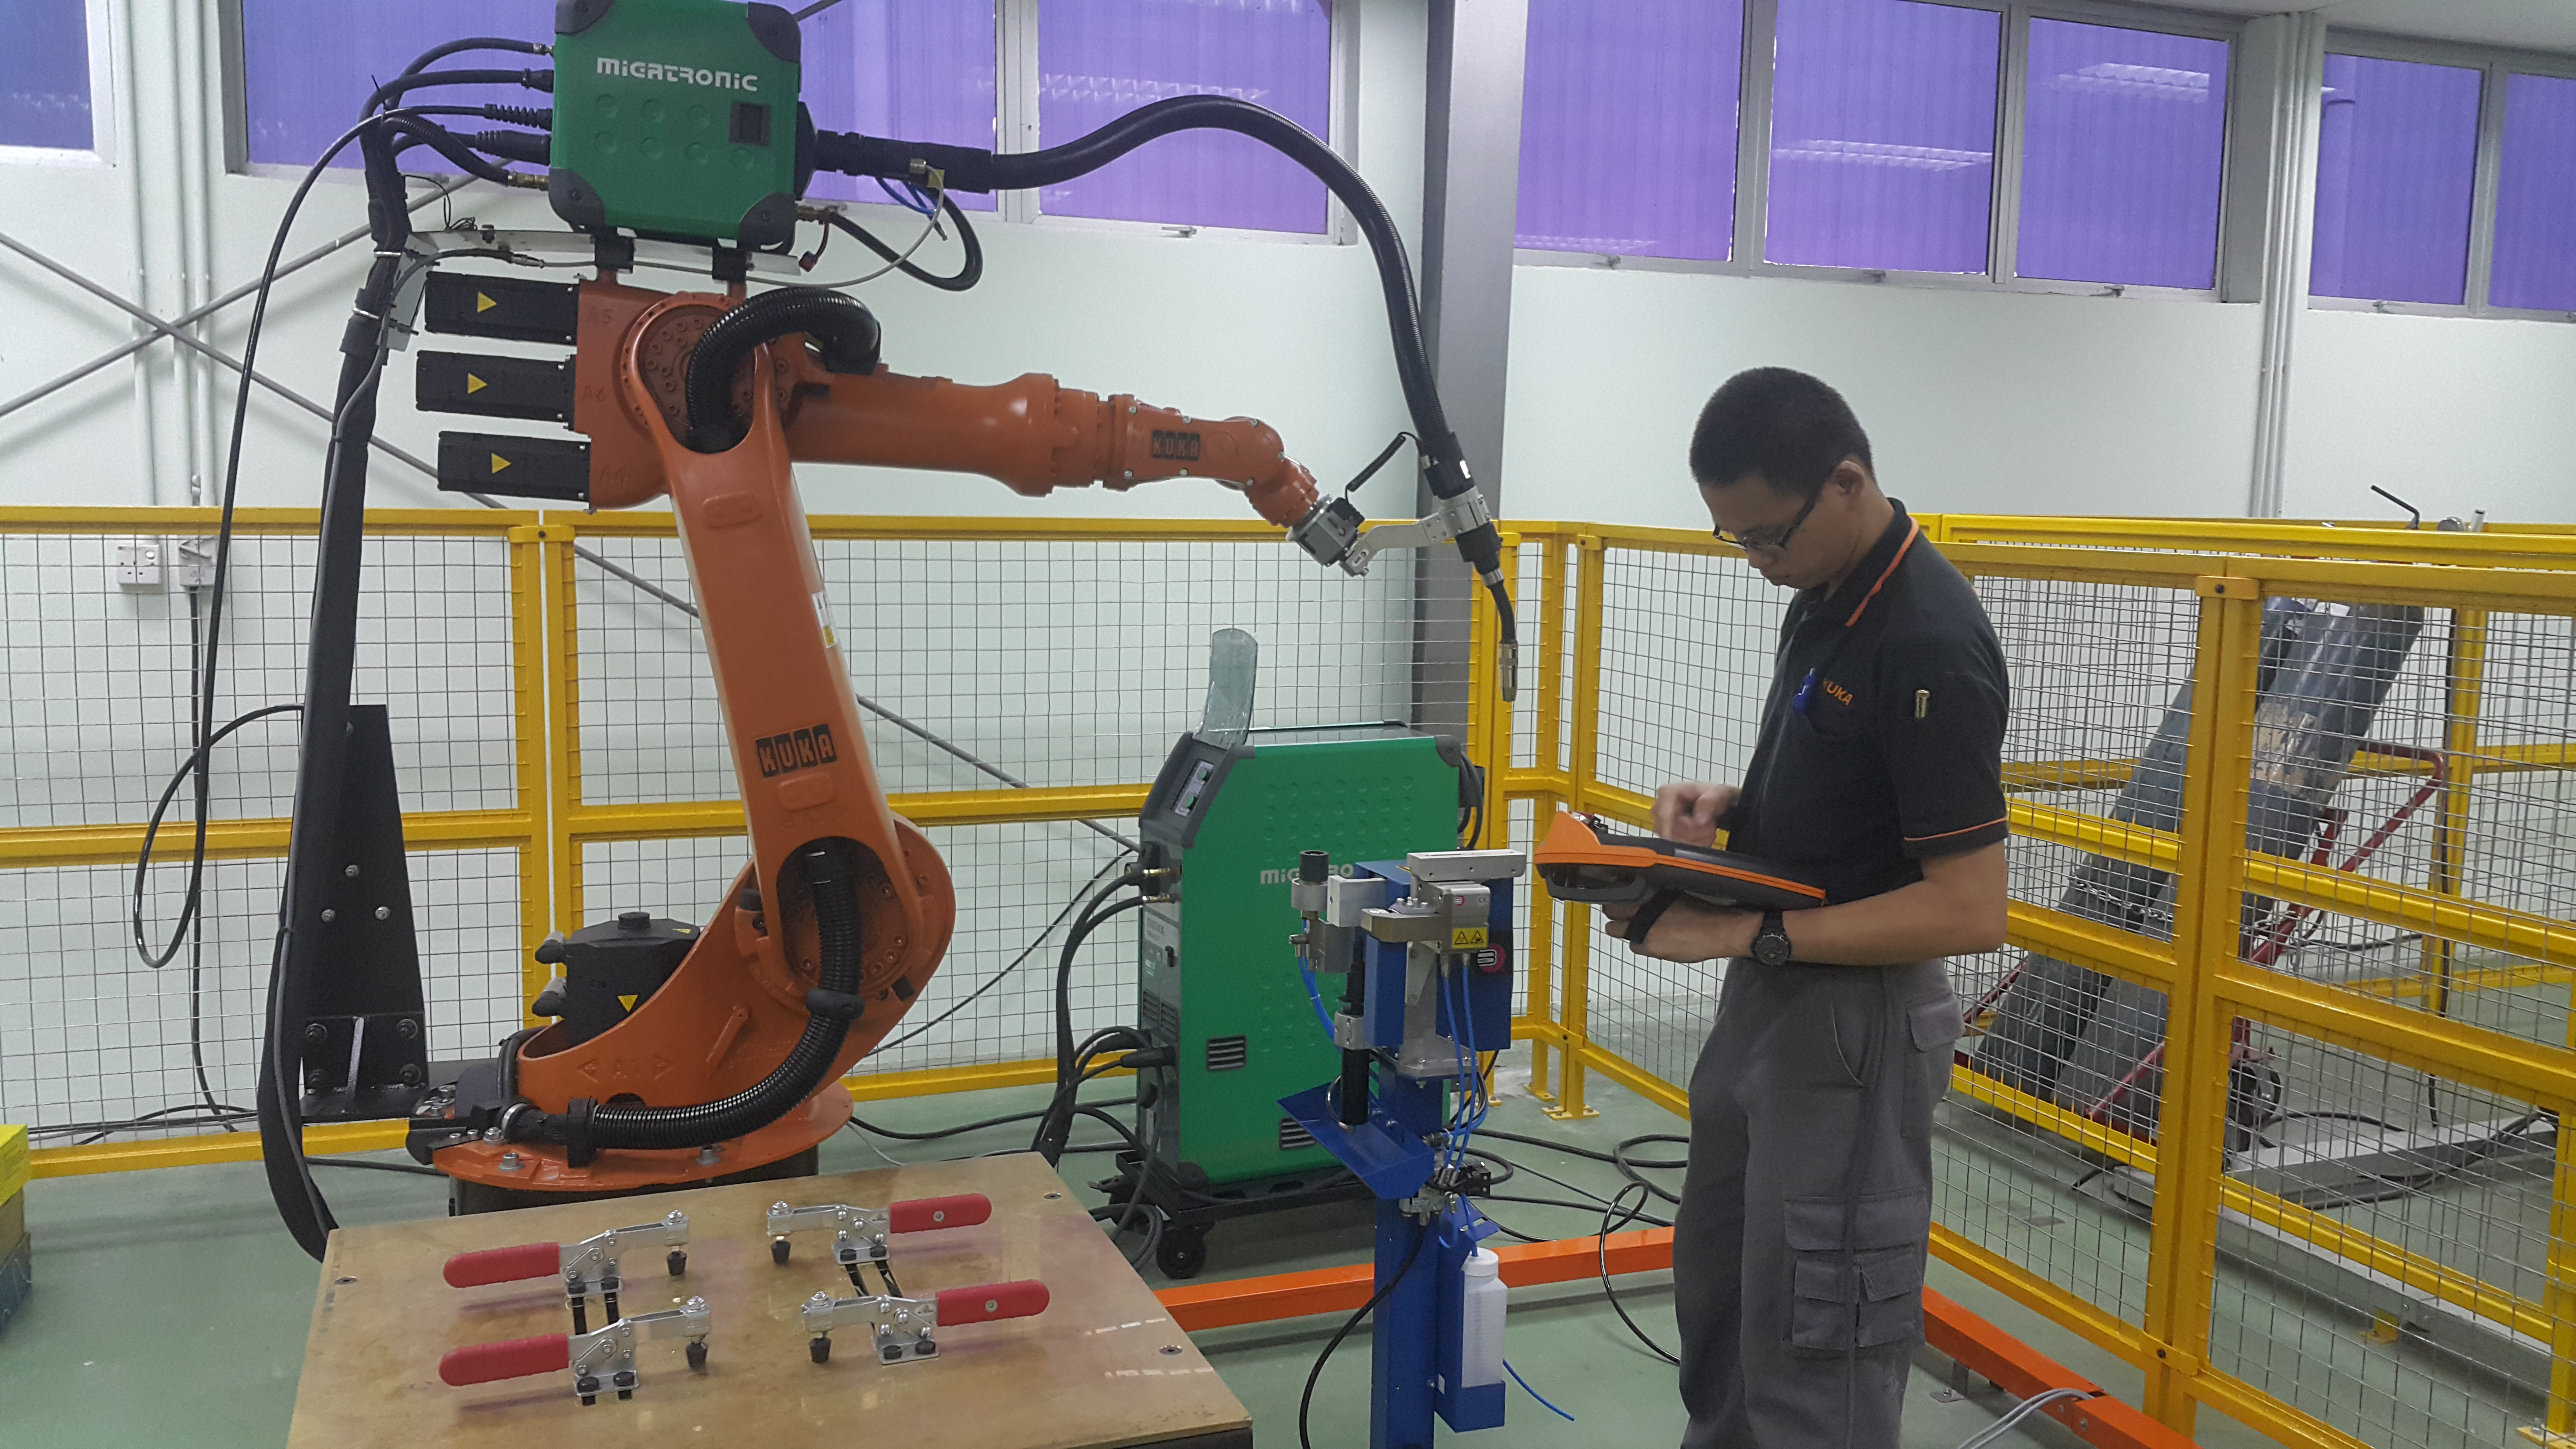 Migatronic Welding Power Source with Kuka Robotic Arm @ UTeM University Malaysia.